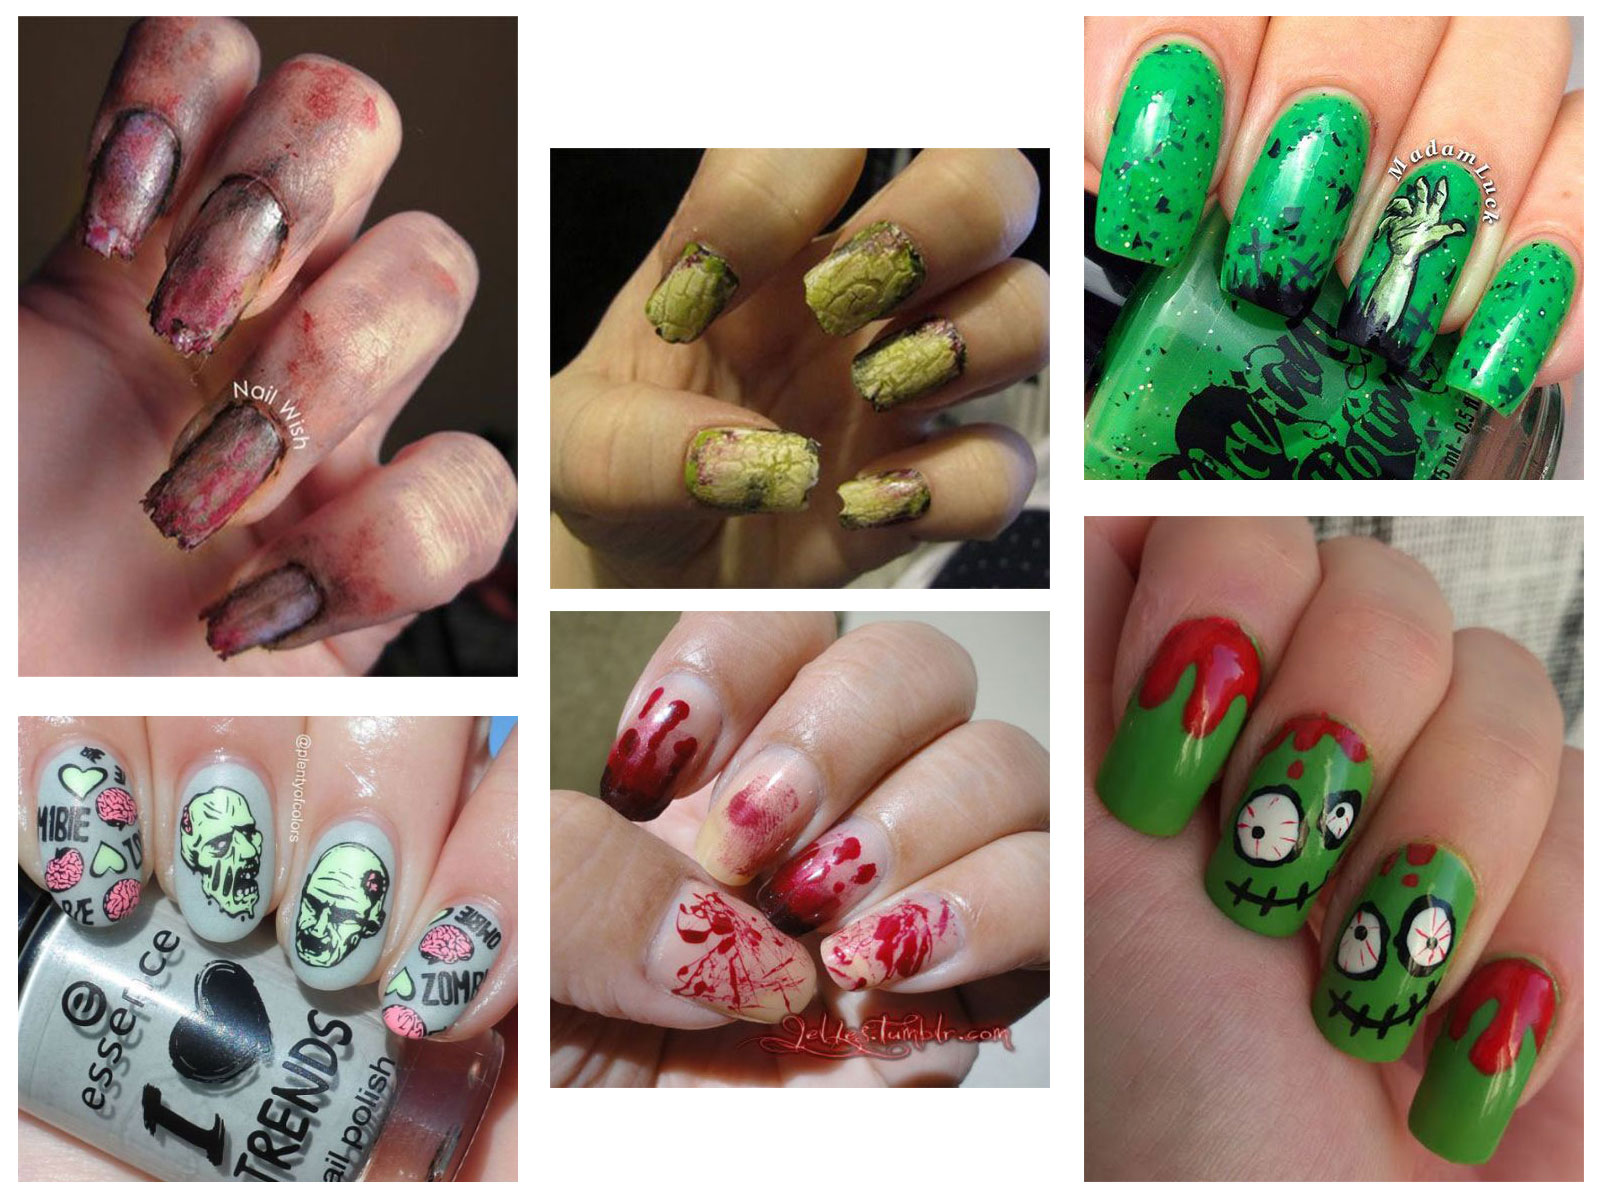 25-Halloween-Inspired-Zombie-Nails-Art-Designs-Ideas-2019-The-Walking-Dead-F